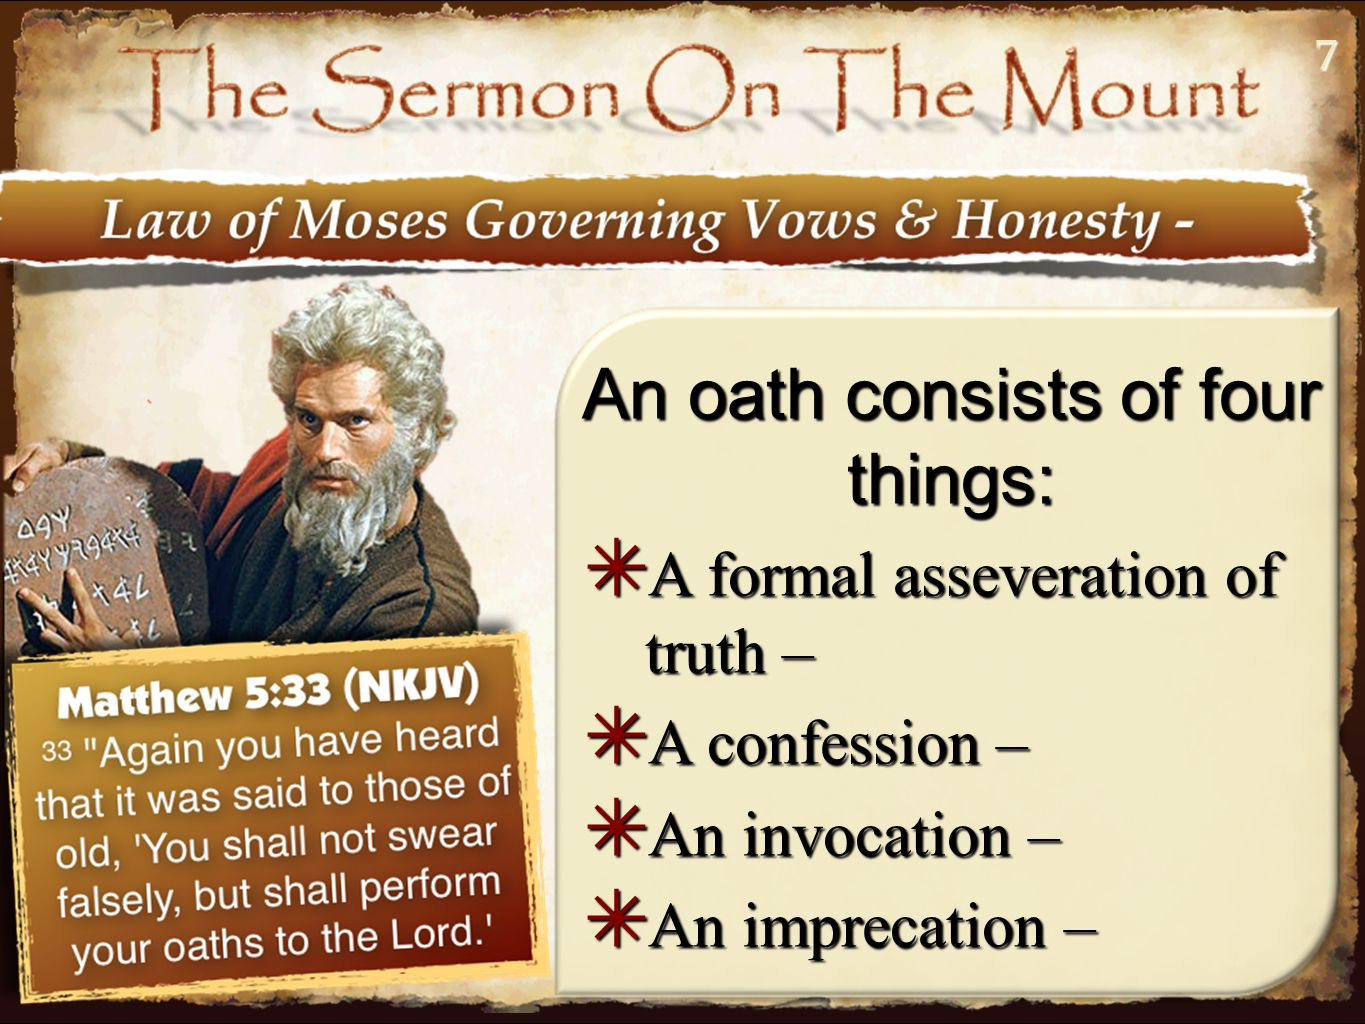 77 An oath consists of four things: ✴ A formal asseveration of truth – ✴ A confession – ✴ An invocation – ✴ An imprecation –